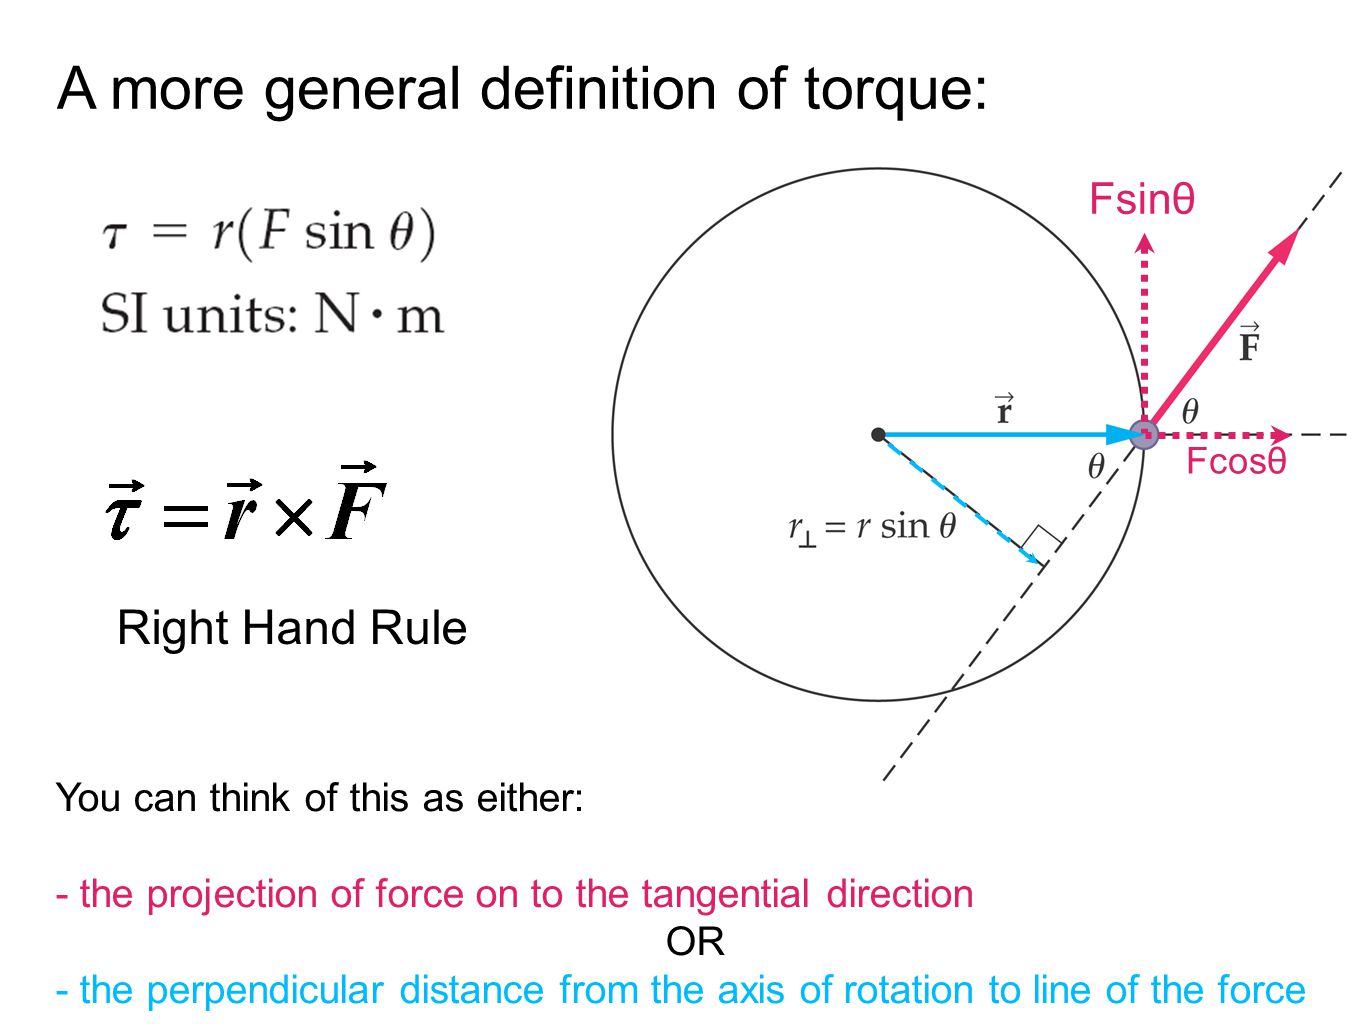 A more general definition of torque: